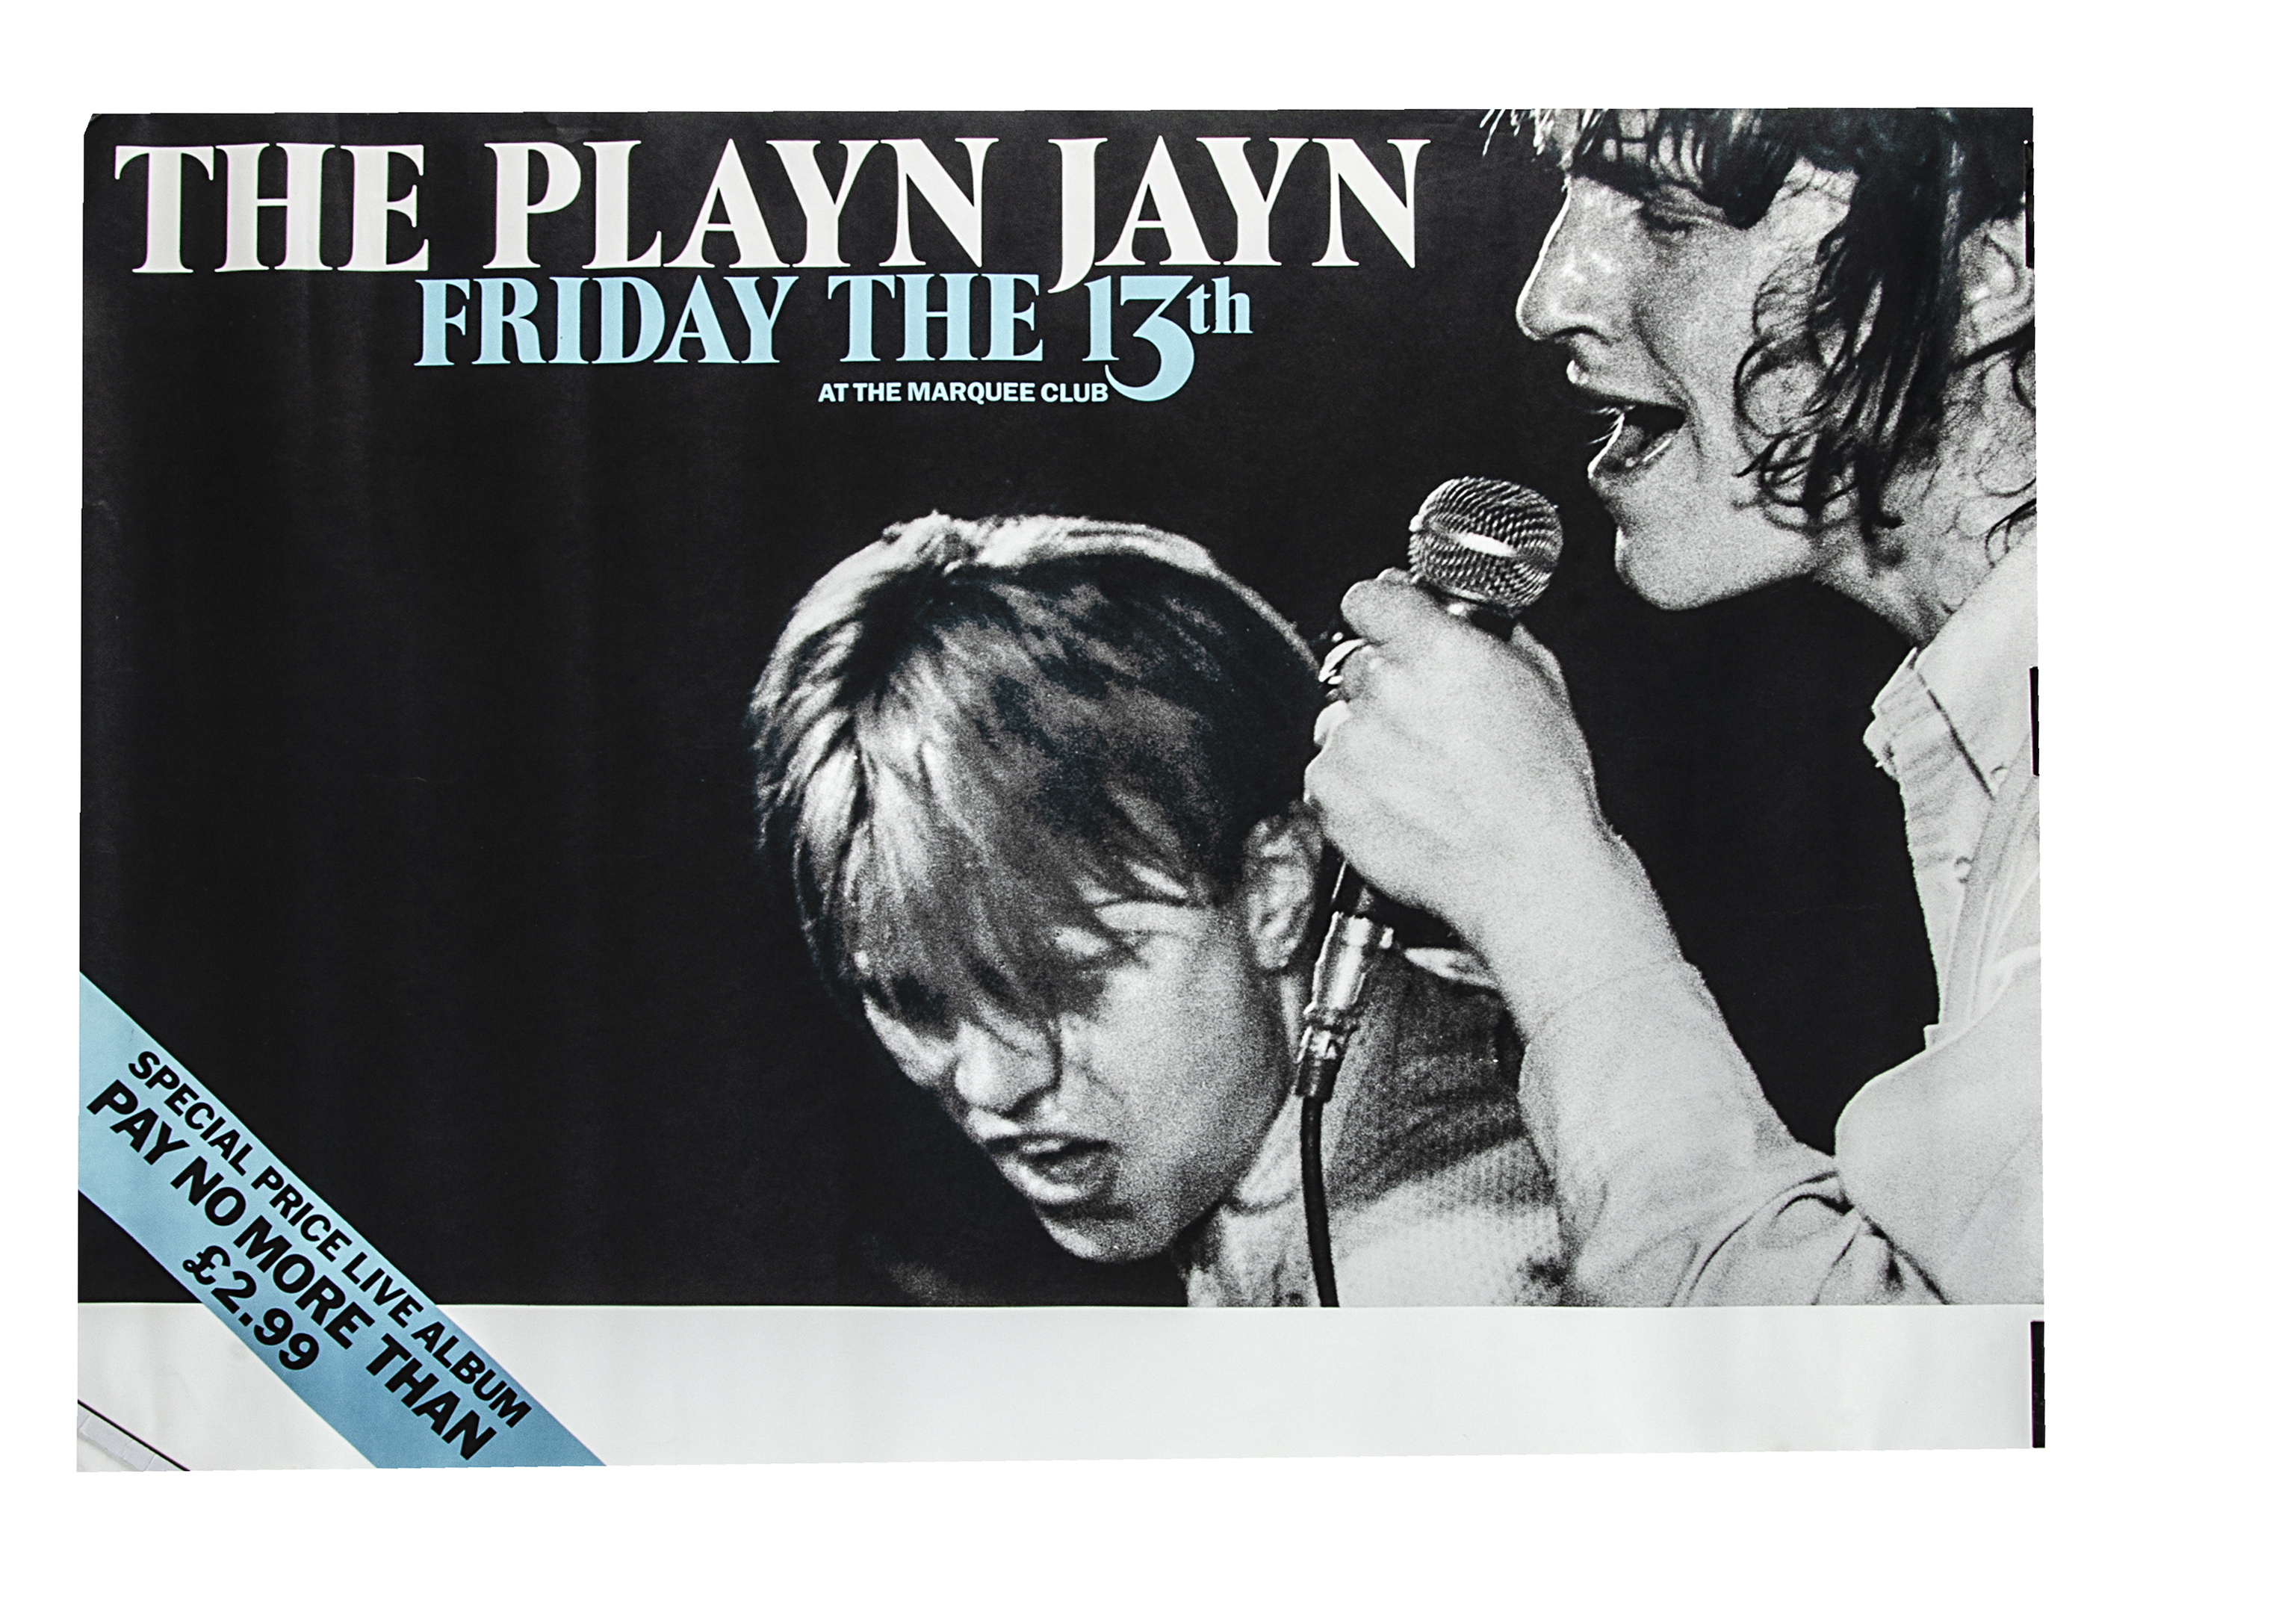 Playn Jayn Marquee Posters, twenty eight Playn Jayn promotional posters for Friday 13th at The